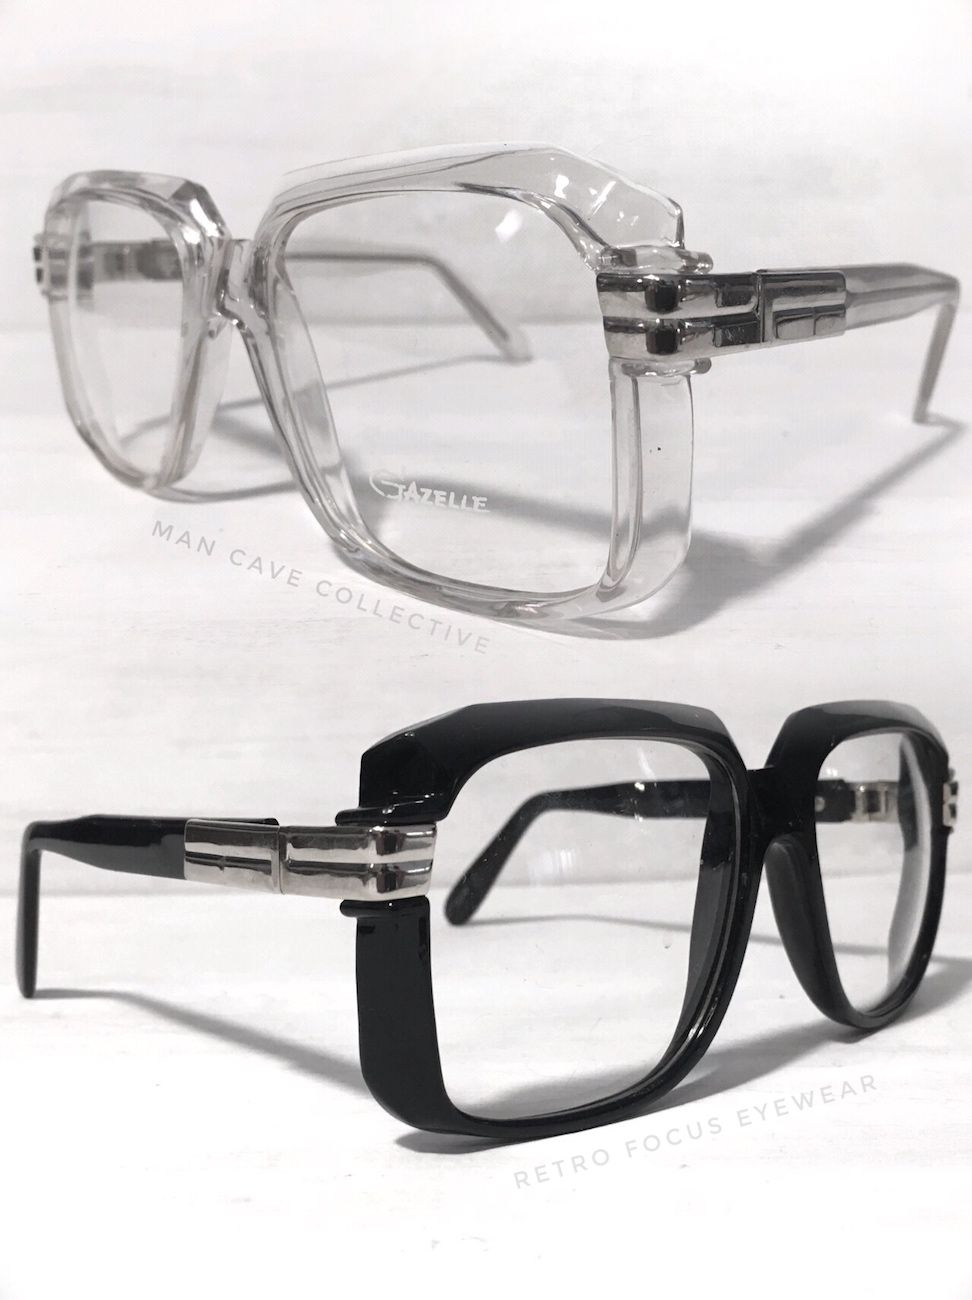 ac8b3be60fe4 Square oversized eyeglasses. Thick geek hipster statement eyeglass frames  in black or crystal clear. Gazelle is the name